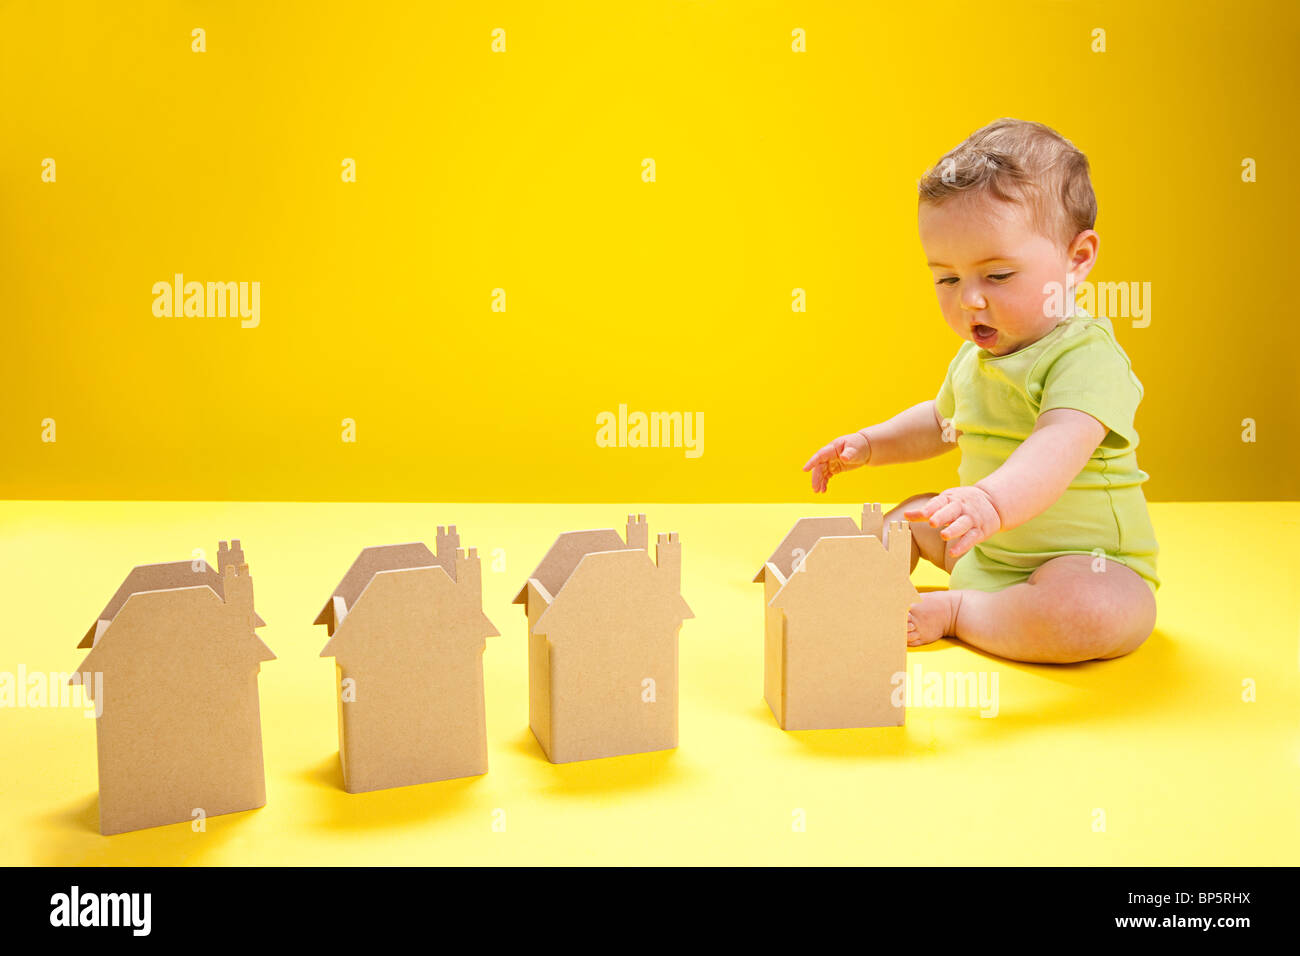 Baby boy playing with cardboard houses - Stock Image